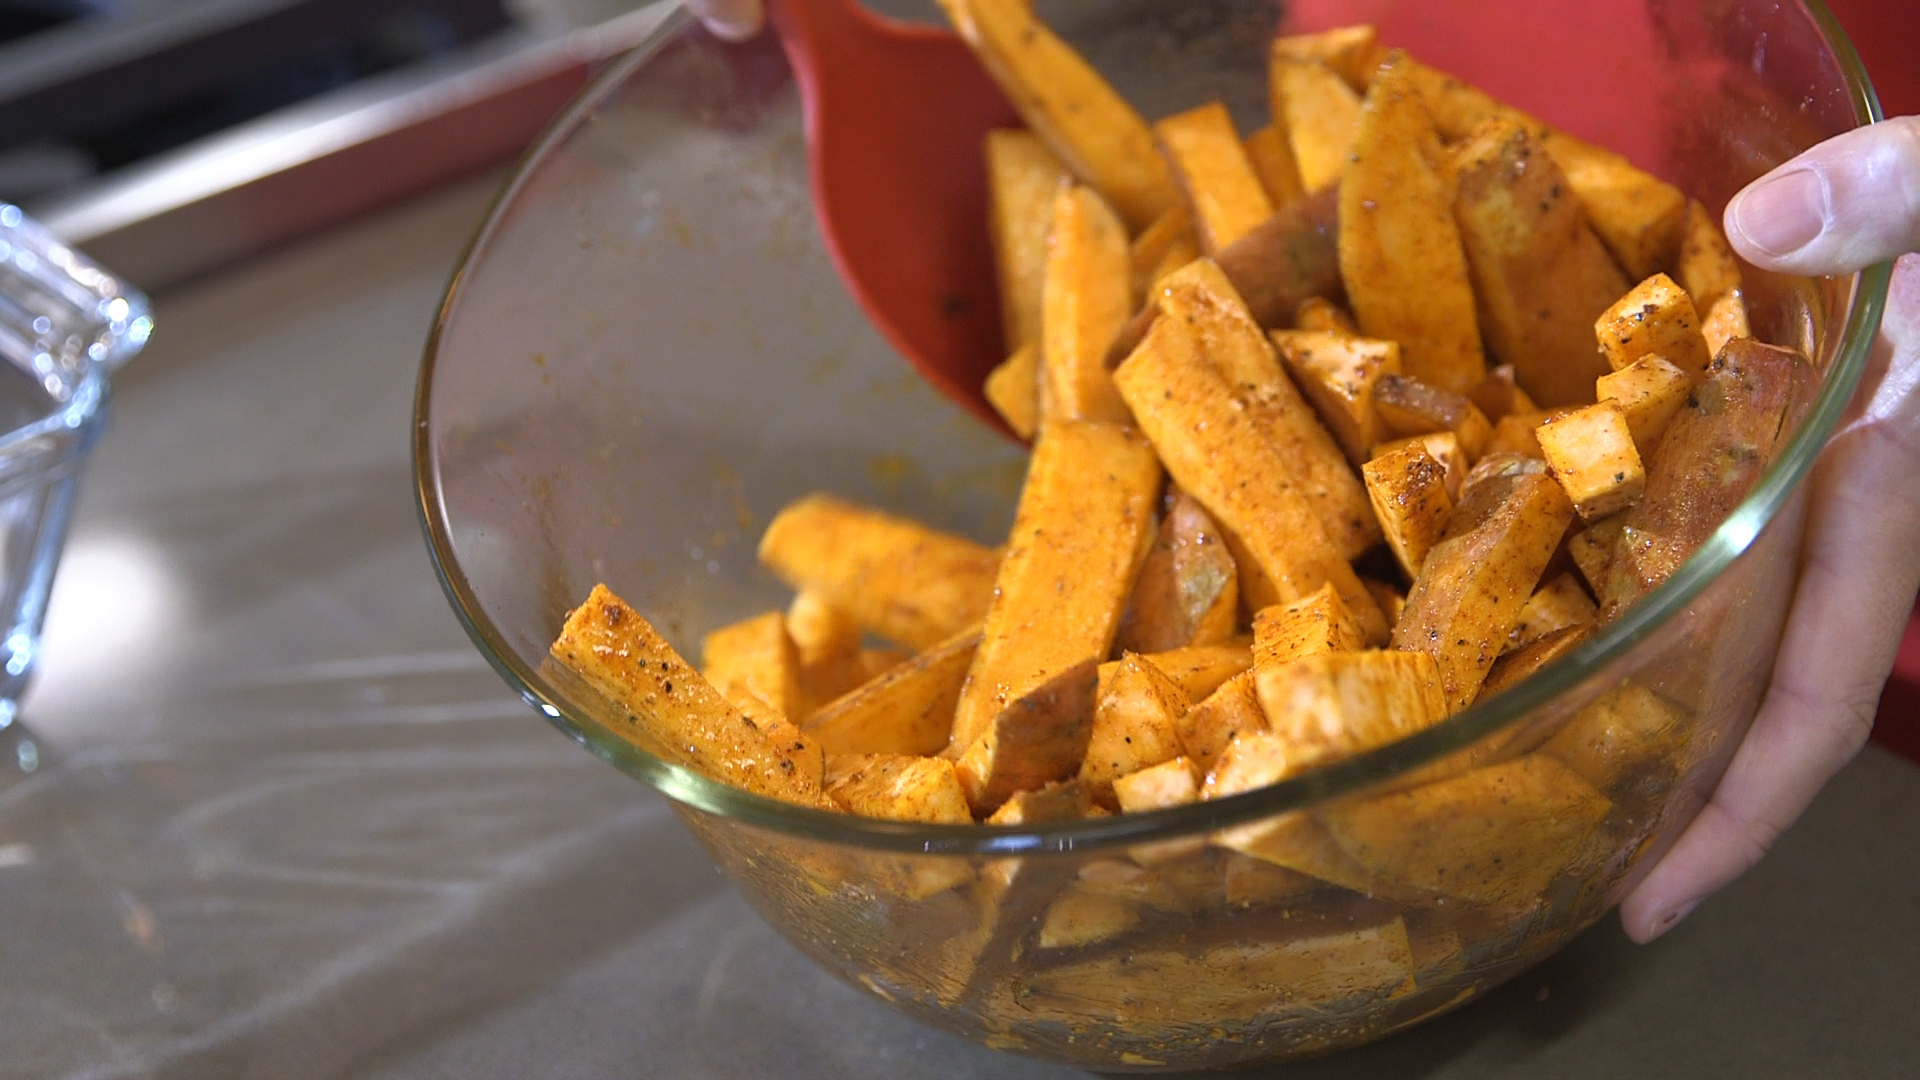 A glass bowl with sweet potato fries made using a recipe from NC State Extension's Homegrown video series.